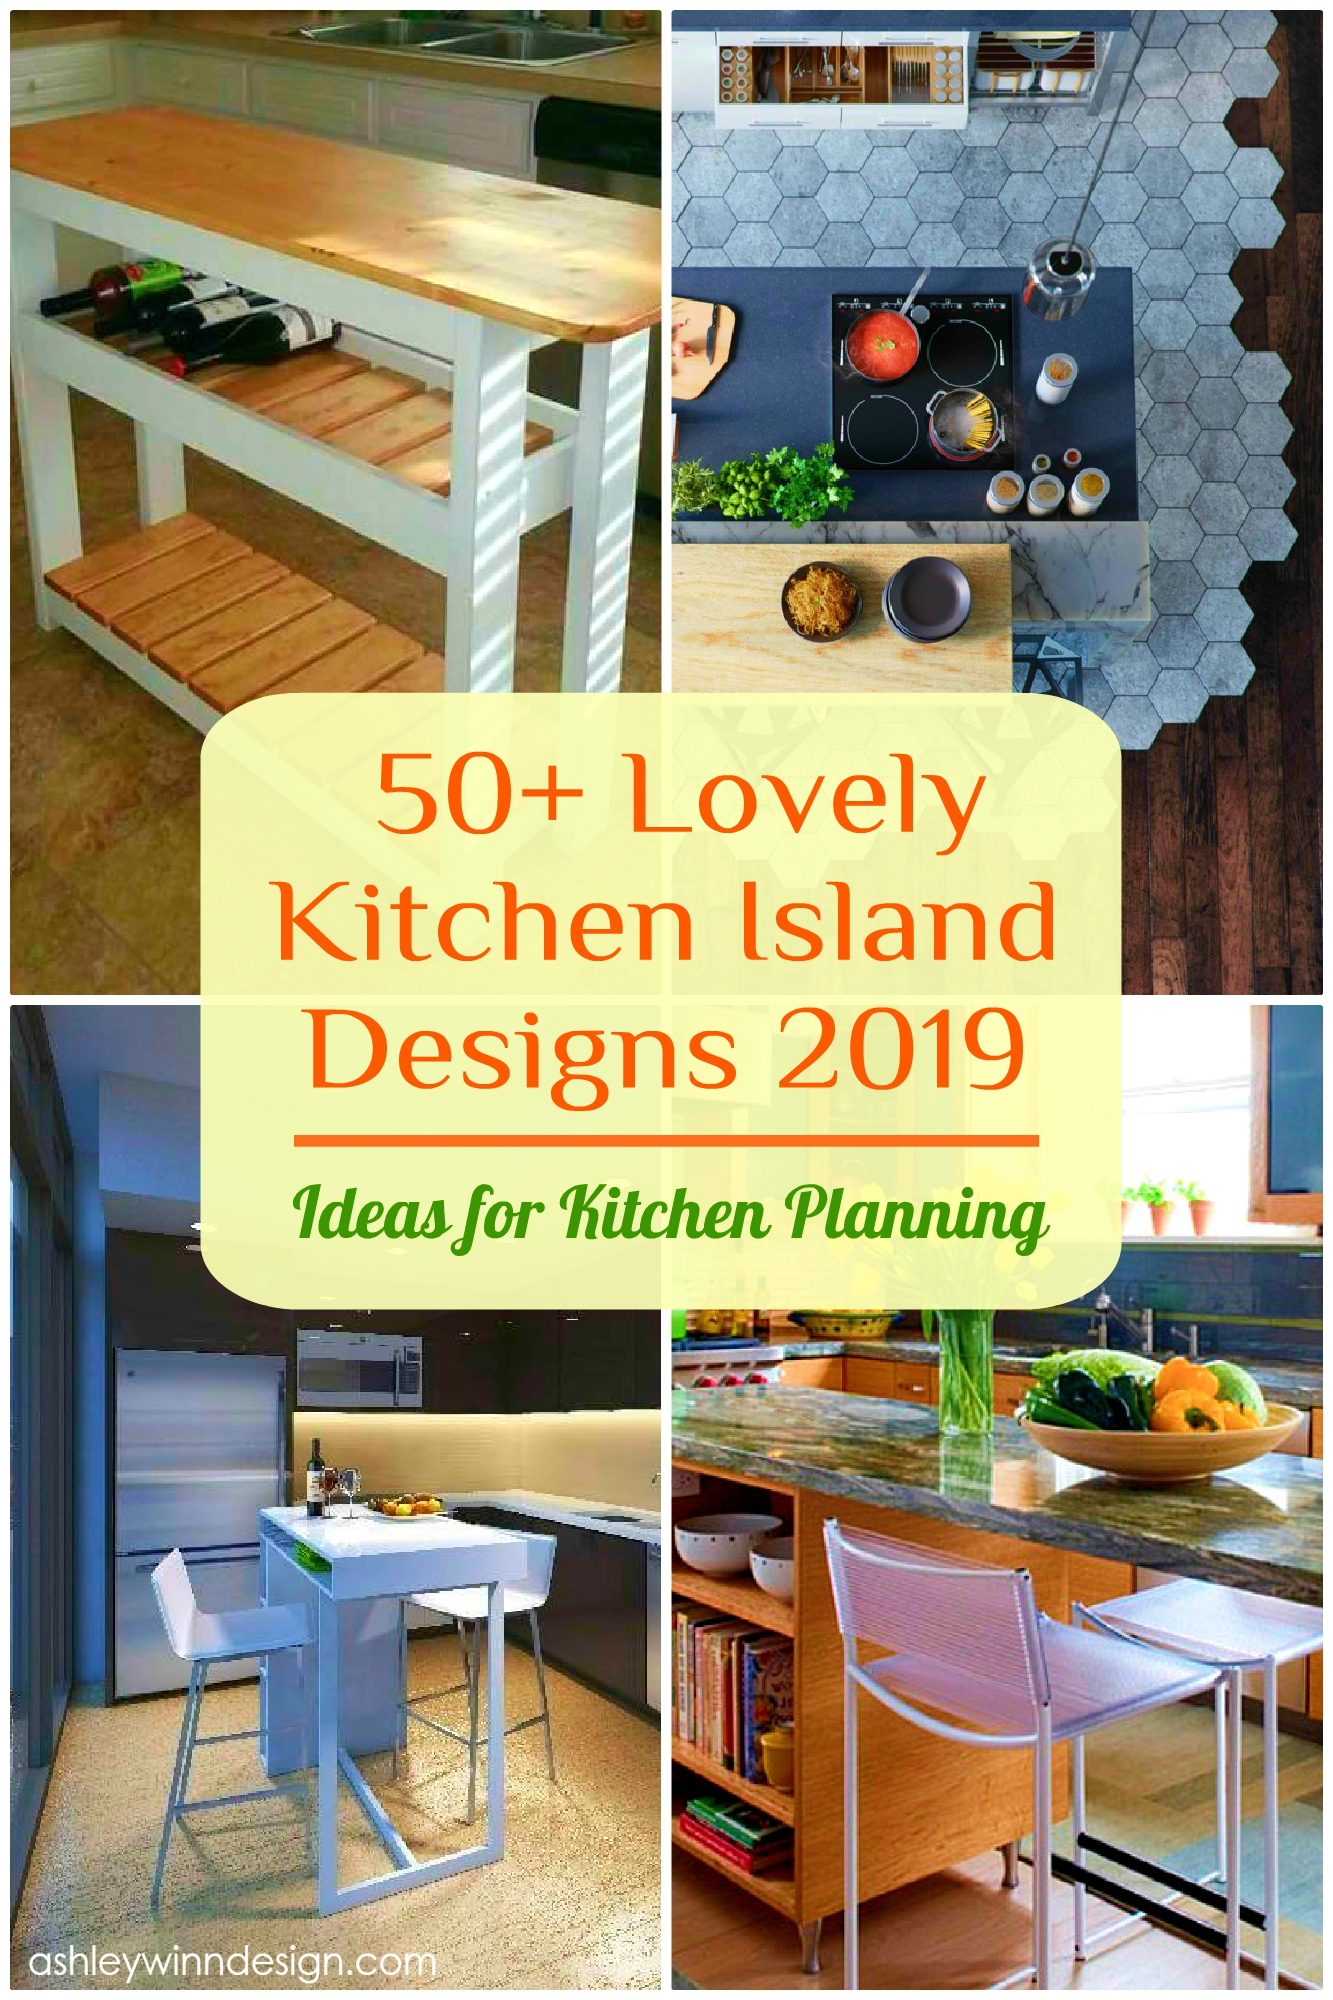 50 lovely kitchen island designs 2019 ideas for kitchen planning